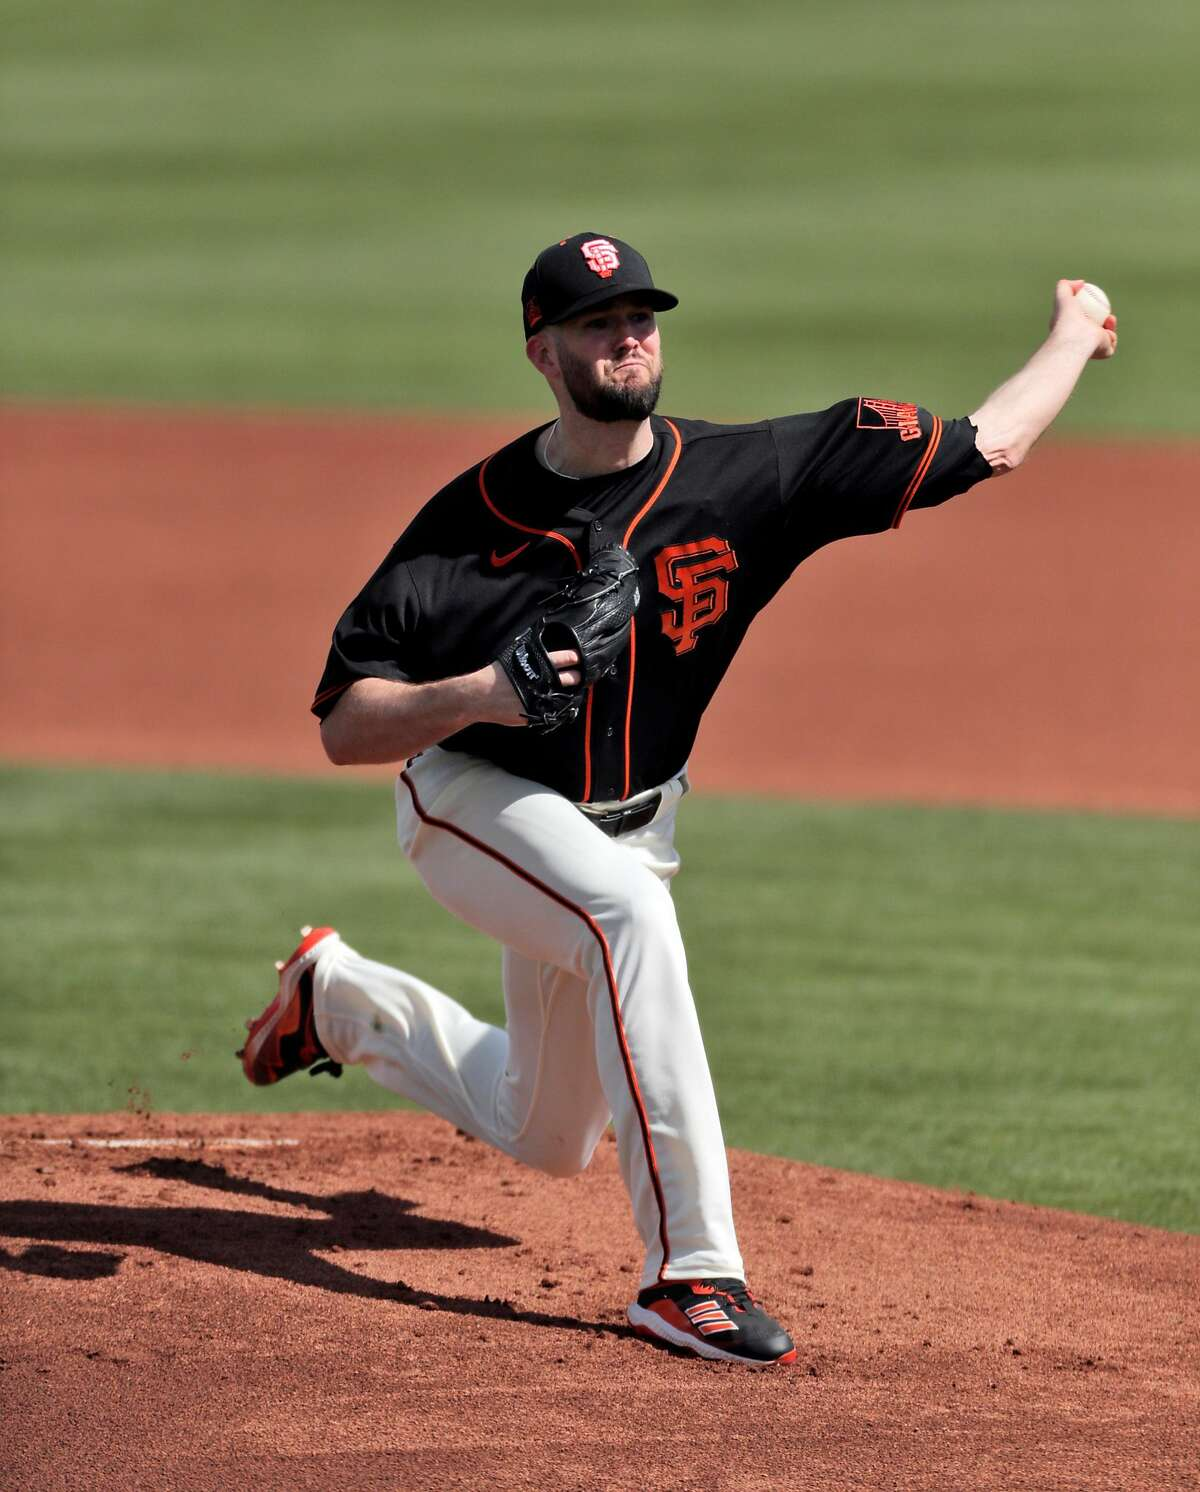 Alex Wood (57) pitches in the first inning as the San Francisco Giants played the Chicago White Sox in a spring training game at Scottsdale Stadium in Scottsdale, Ariz., on Thursday, March 4, 2021.